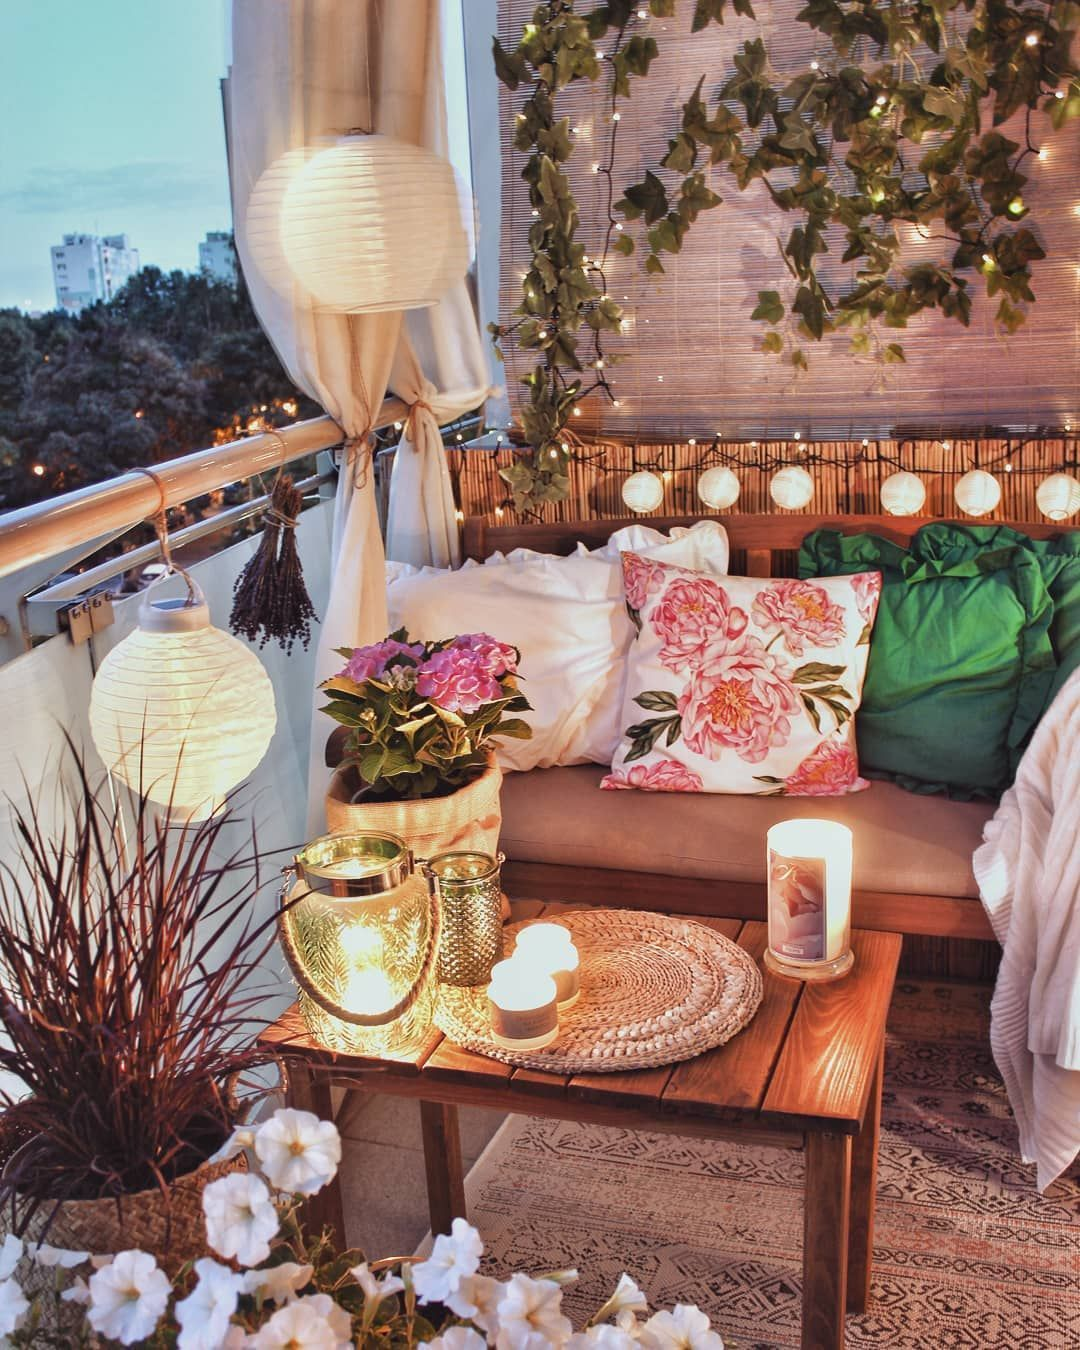 40 Cozy Balcony Ideas and Decor Inspiration 2019 – Page 8 of 41 – My Blog